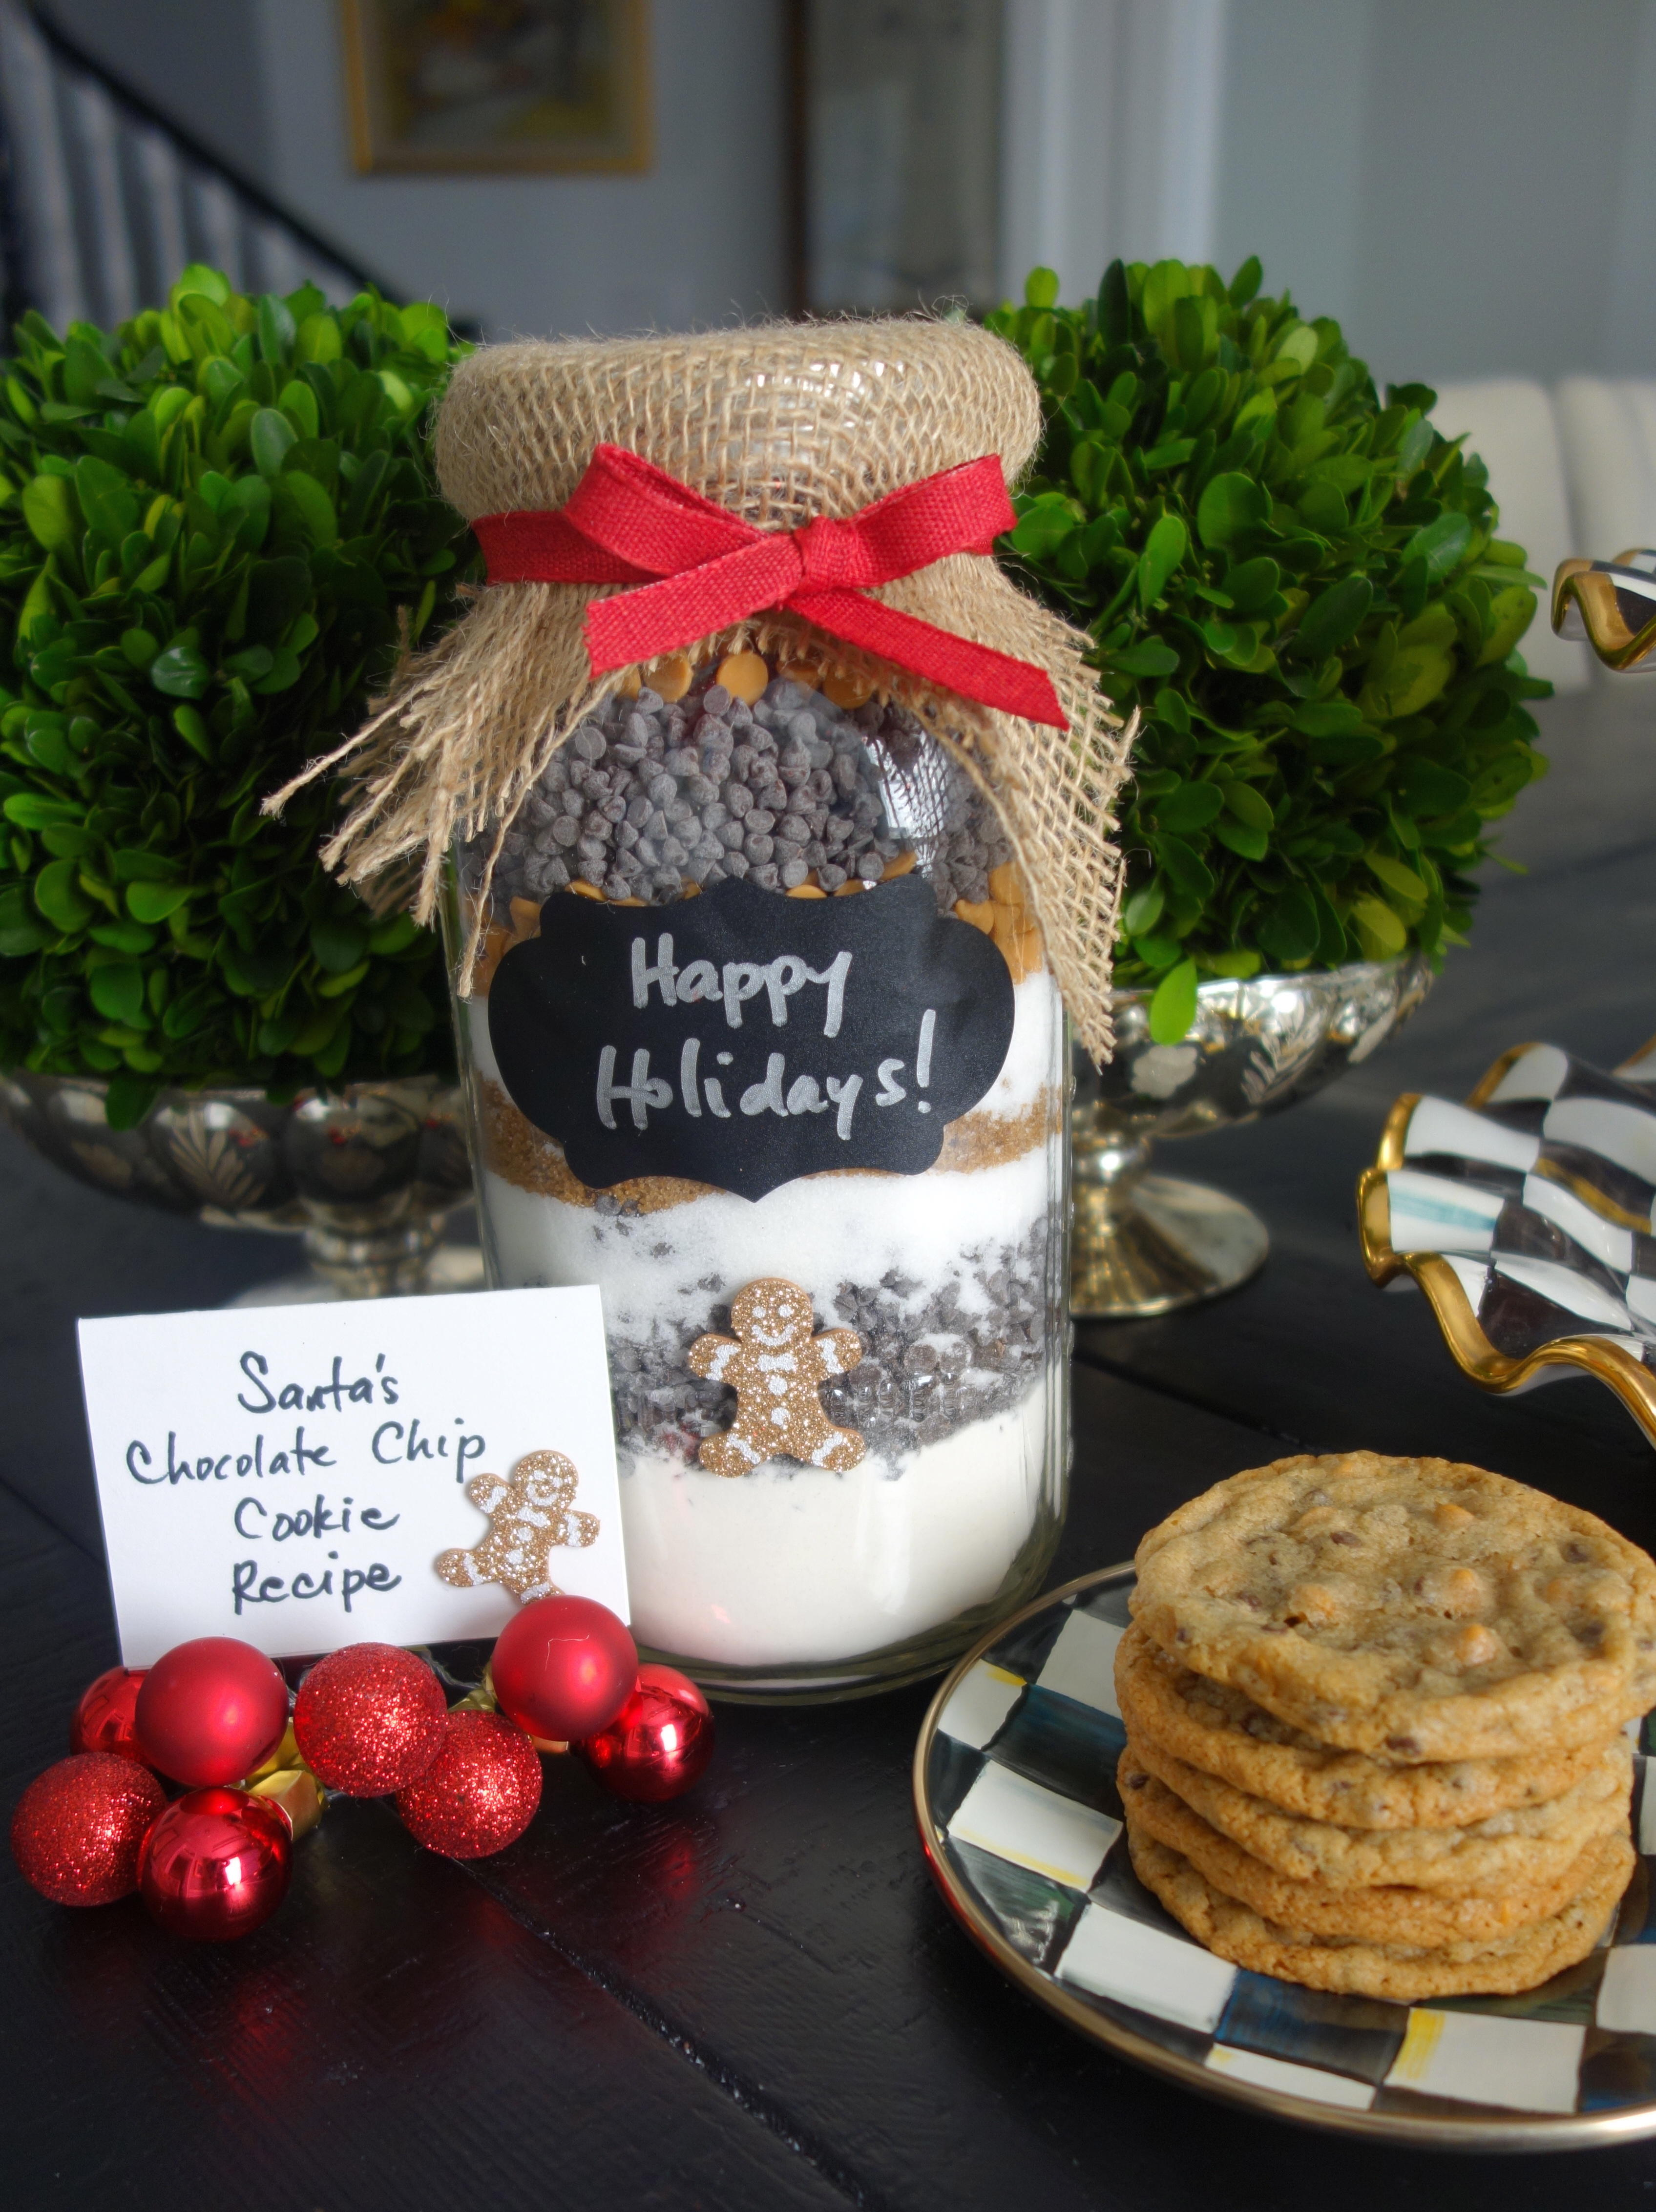 Santa's Chocolate & Butterscotch Chip Cookie Ingredient Mason Jar Holiday Gifts